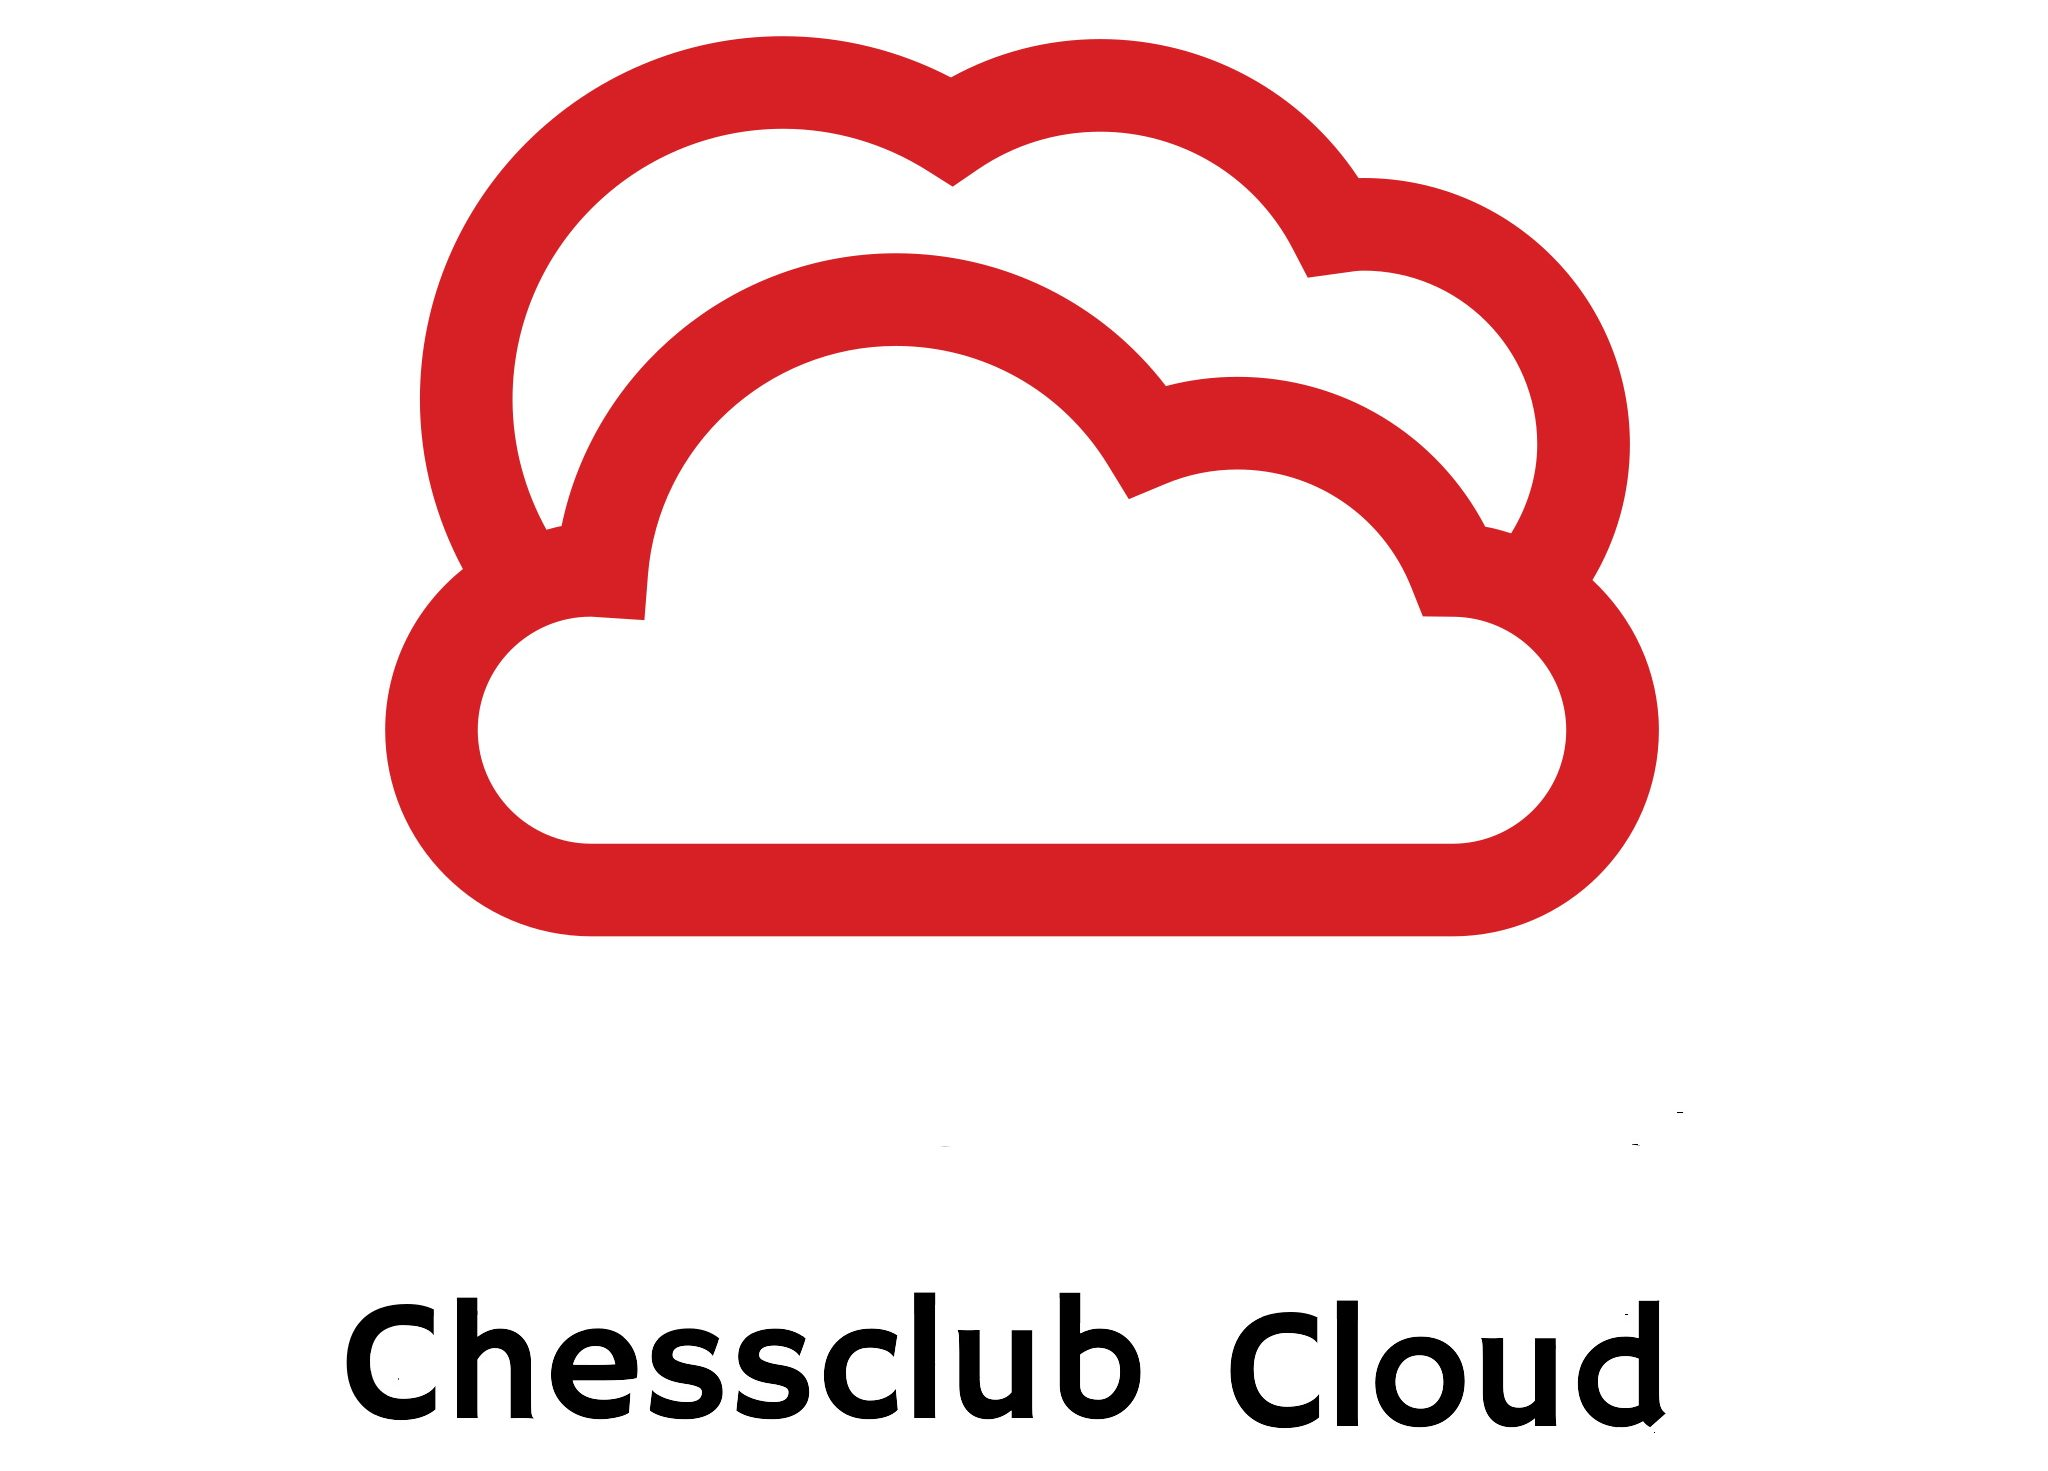 Chessclub Cloud